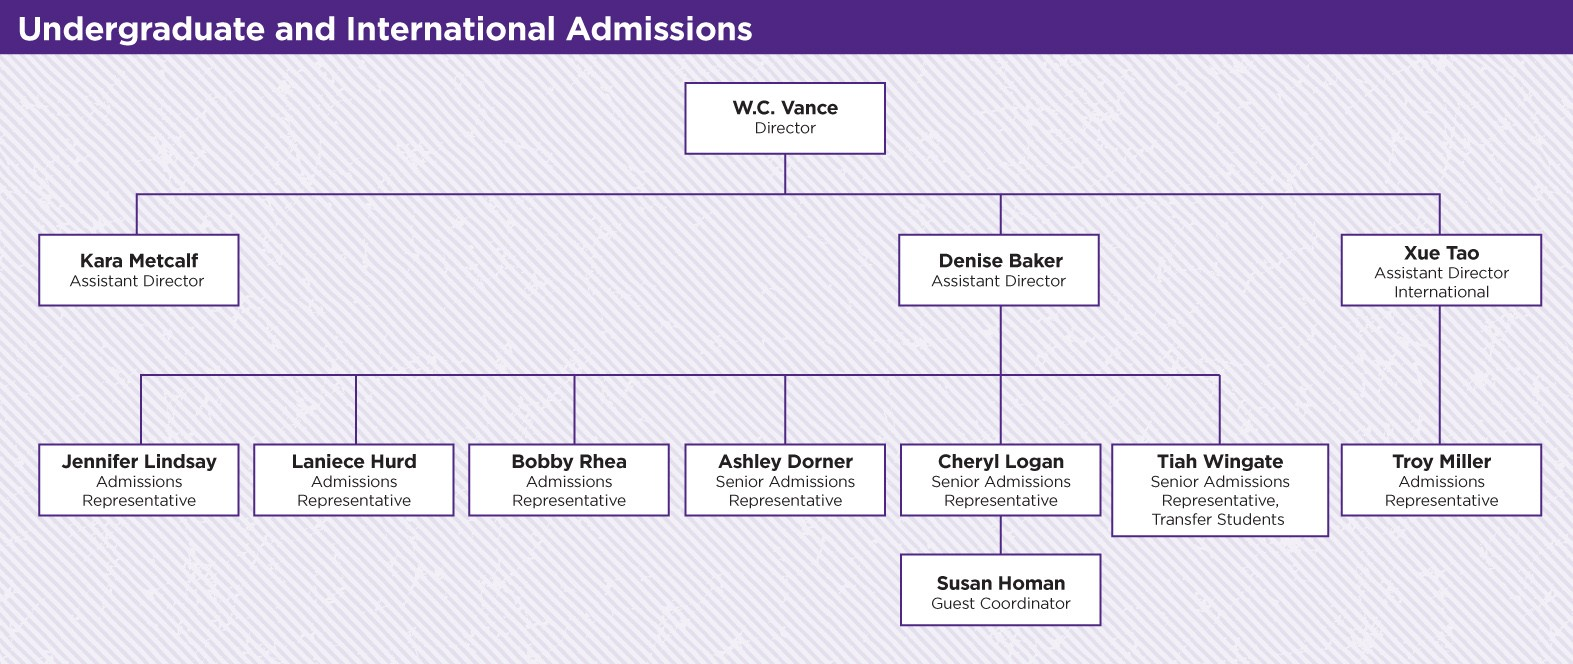 Undergraduate and International Admissions Organizational Chart